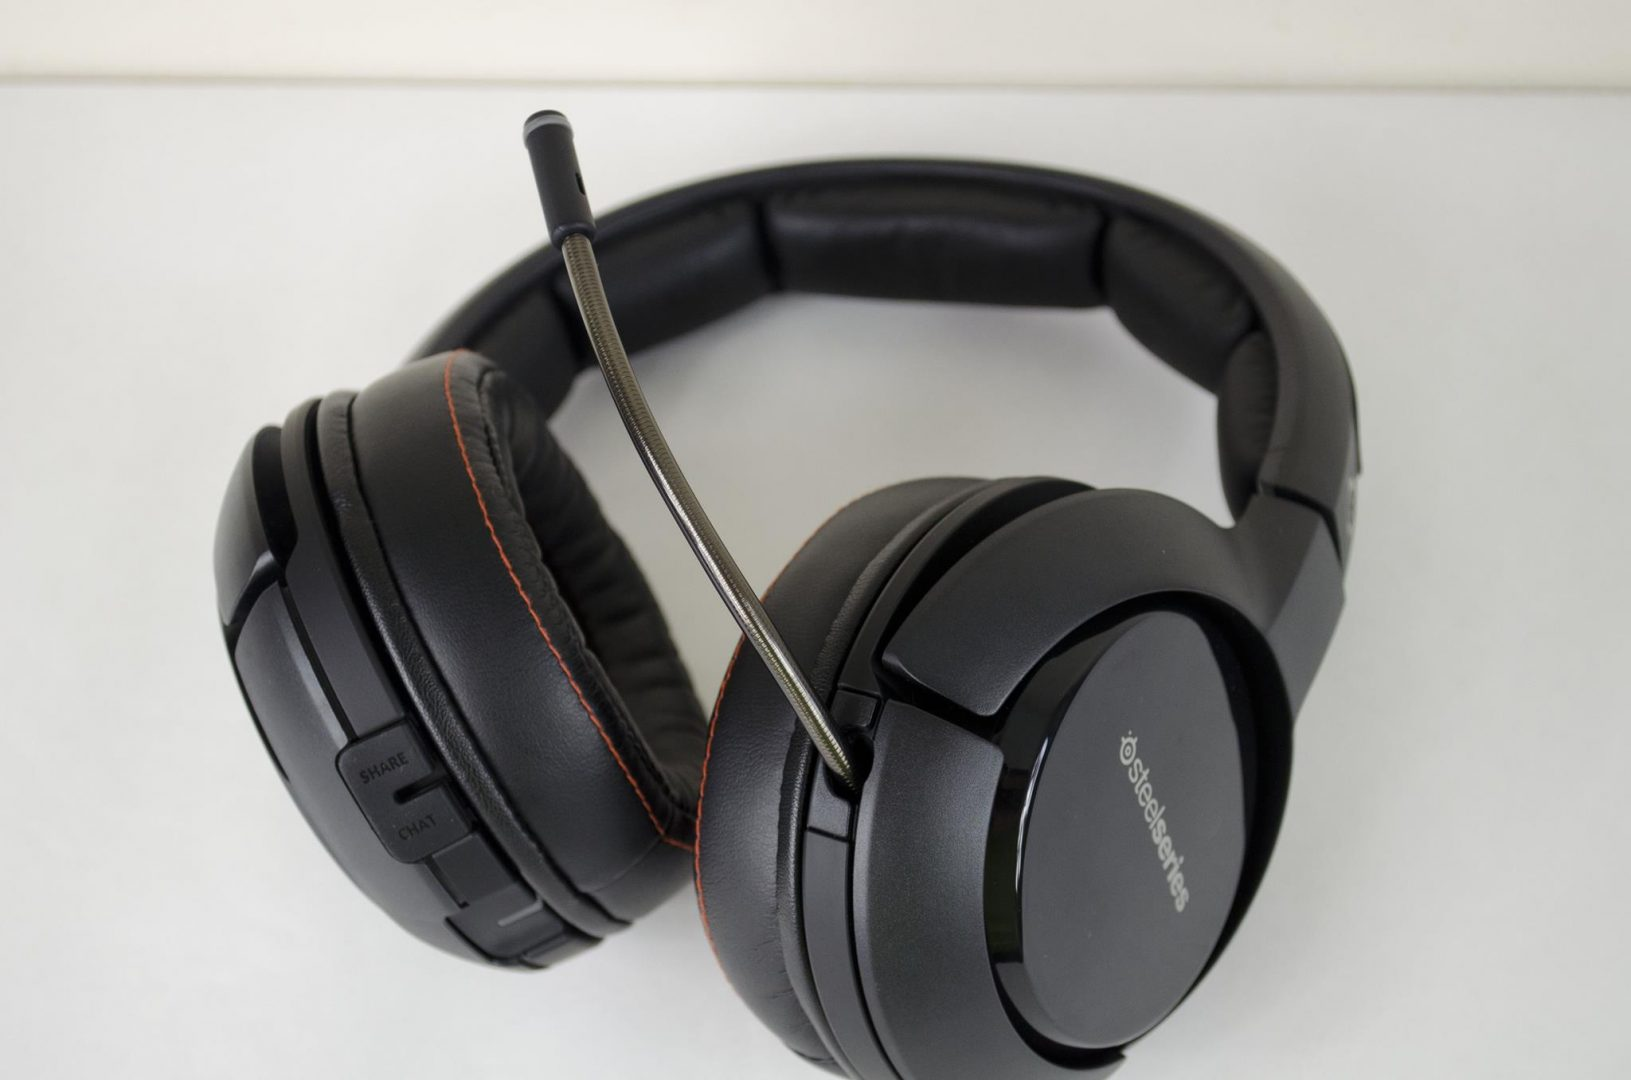 steelseries siber 800 wireless gaming headset review_19